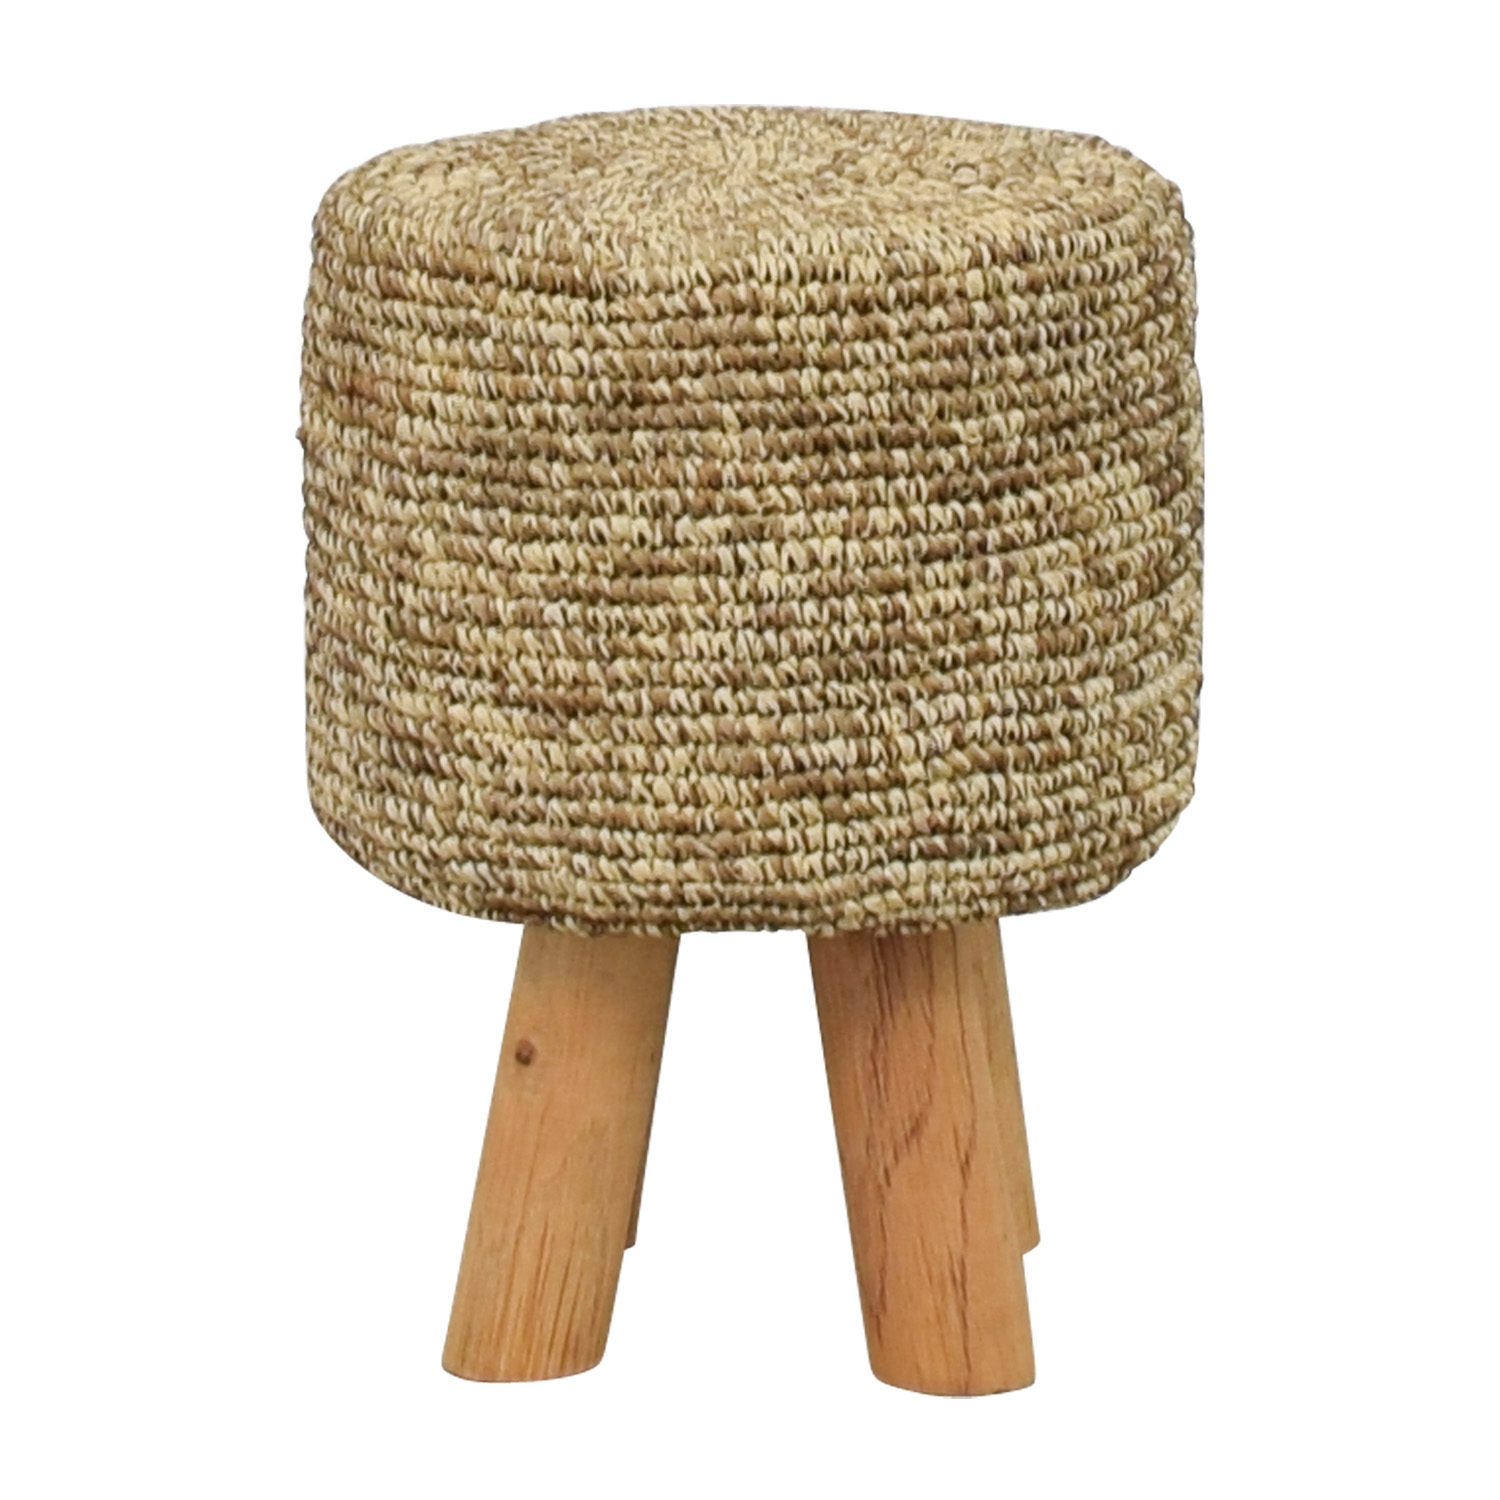 Wool and Wood Short Stool used